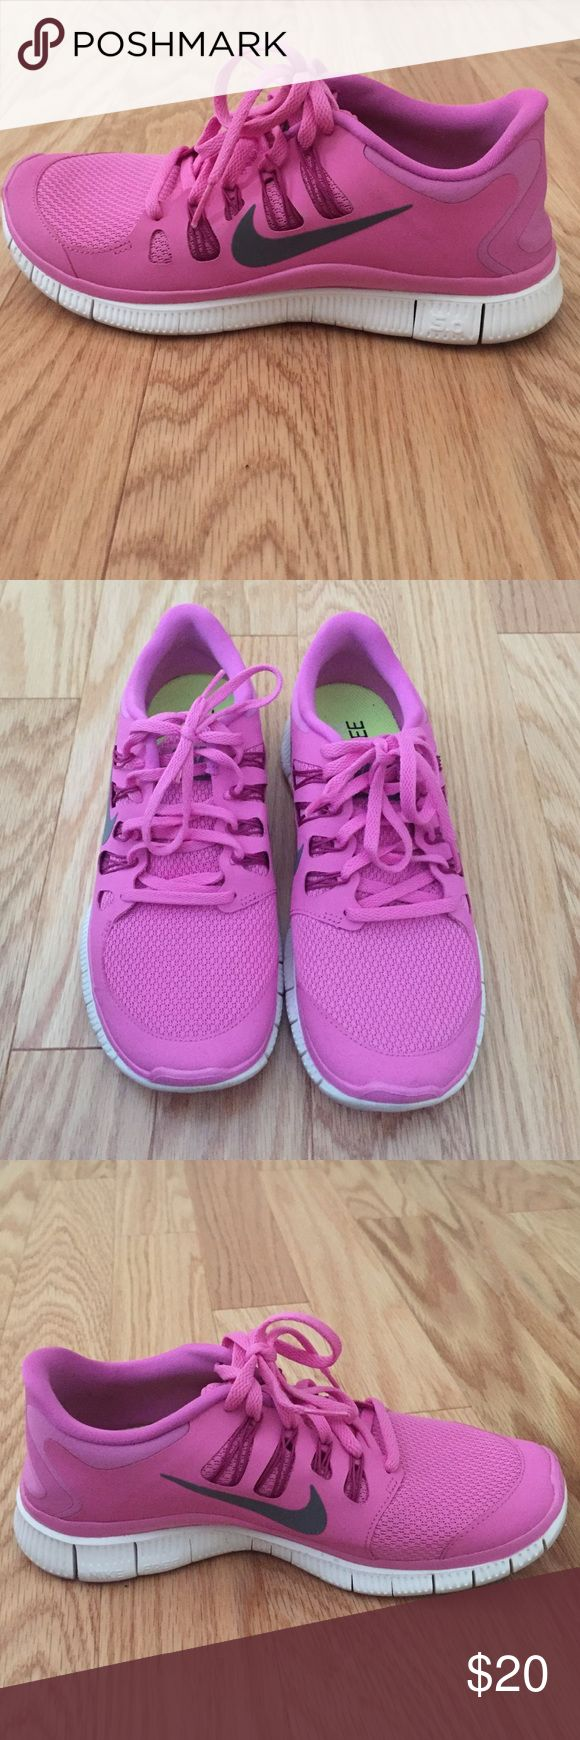 Nike free 5.0 pink sneakers Nike free 5.0 pink sneakers Nike Shoes Athletic Shoes